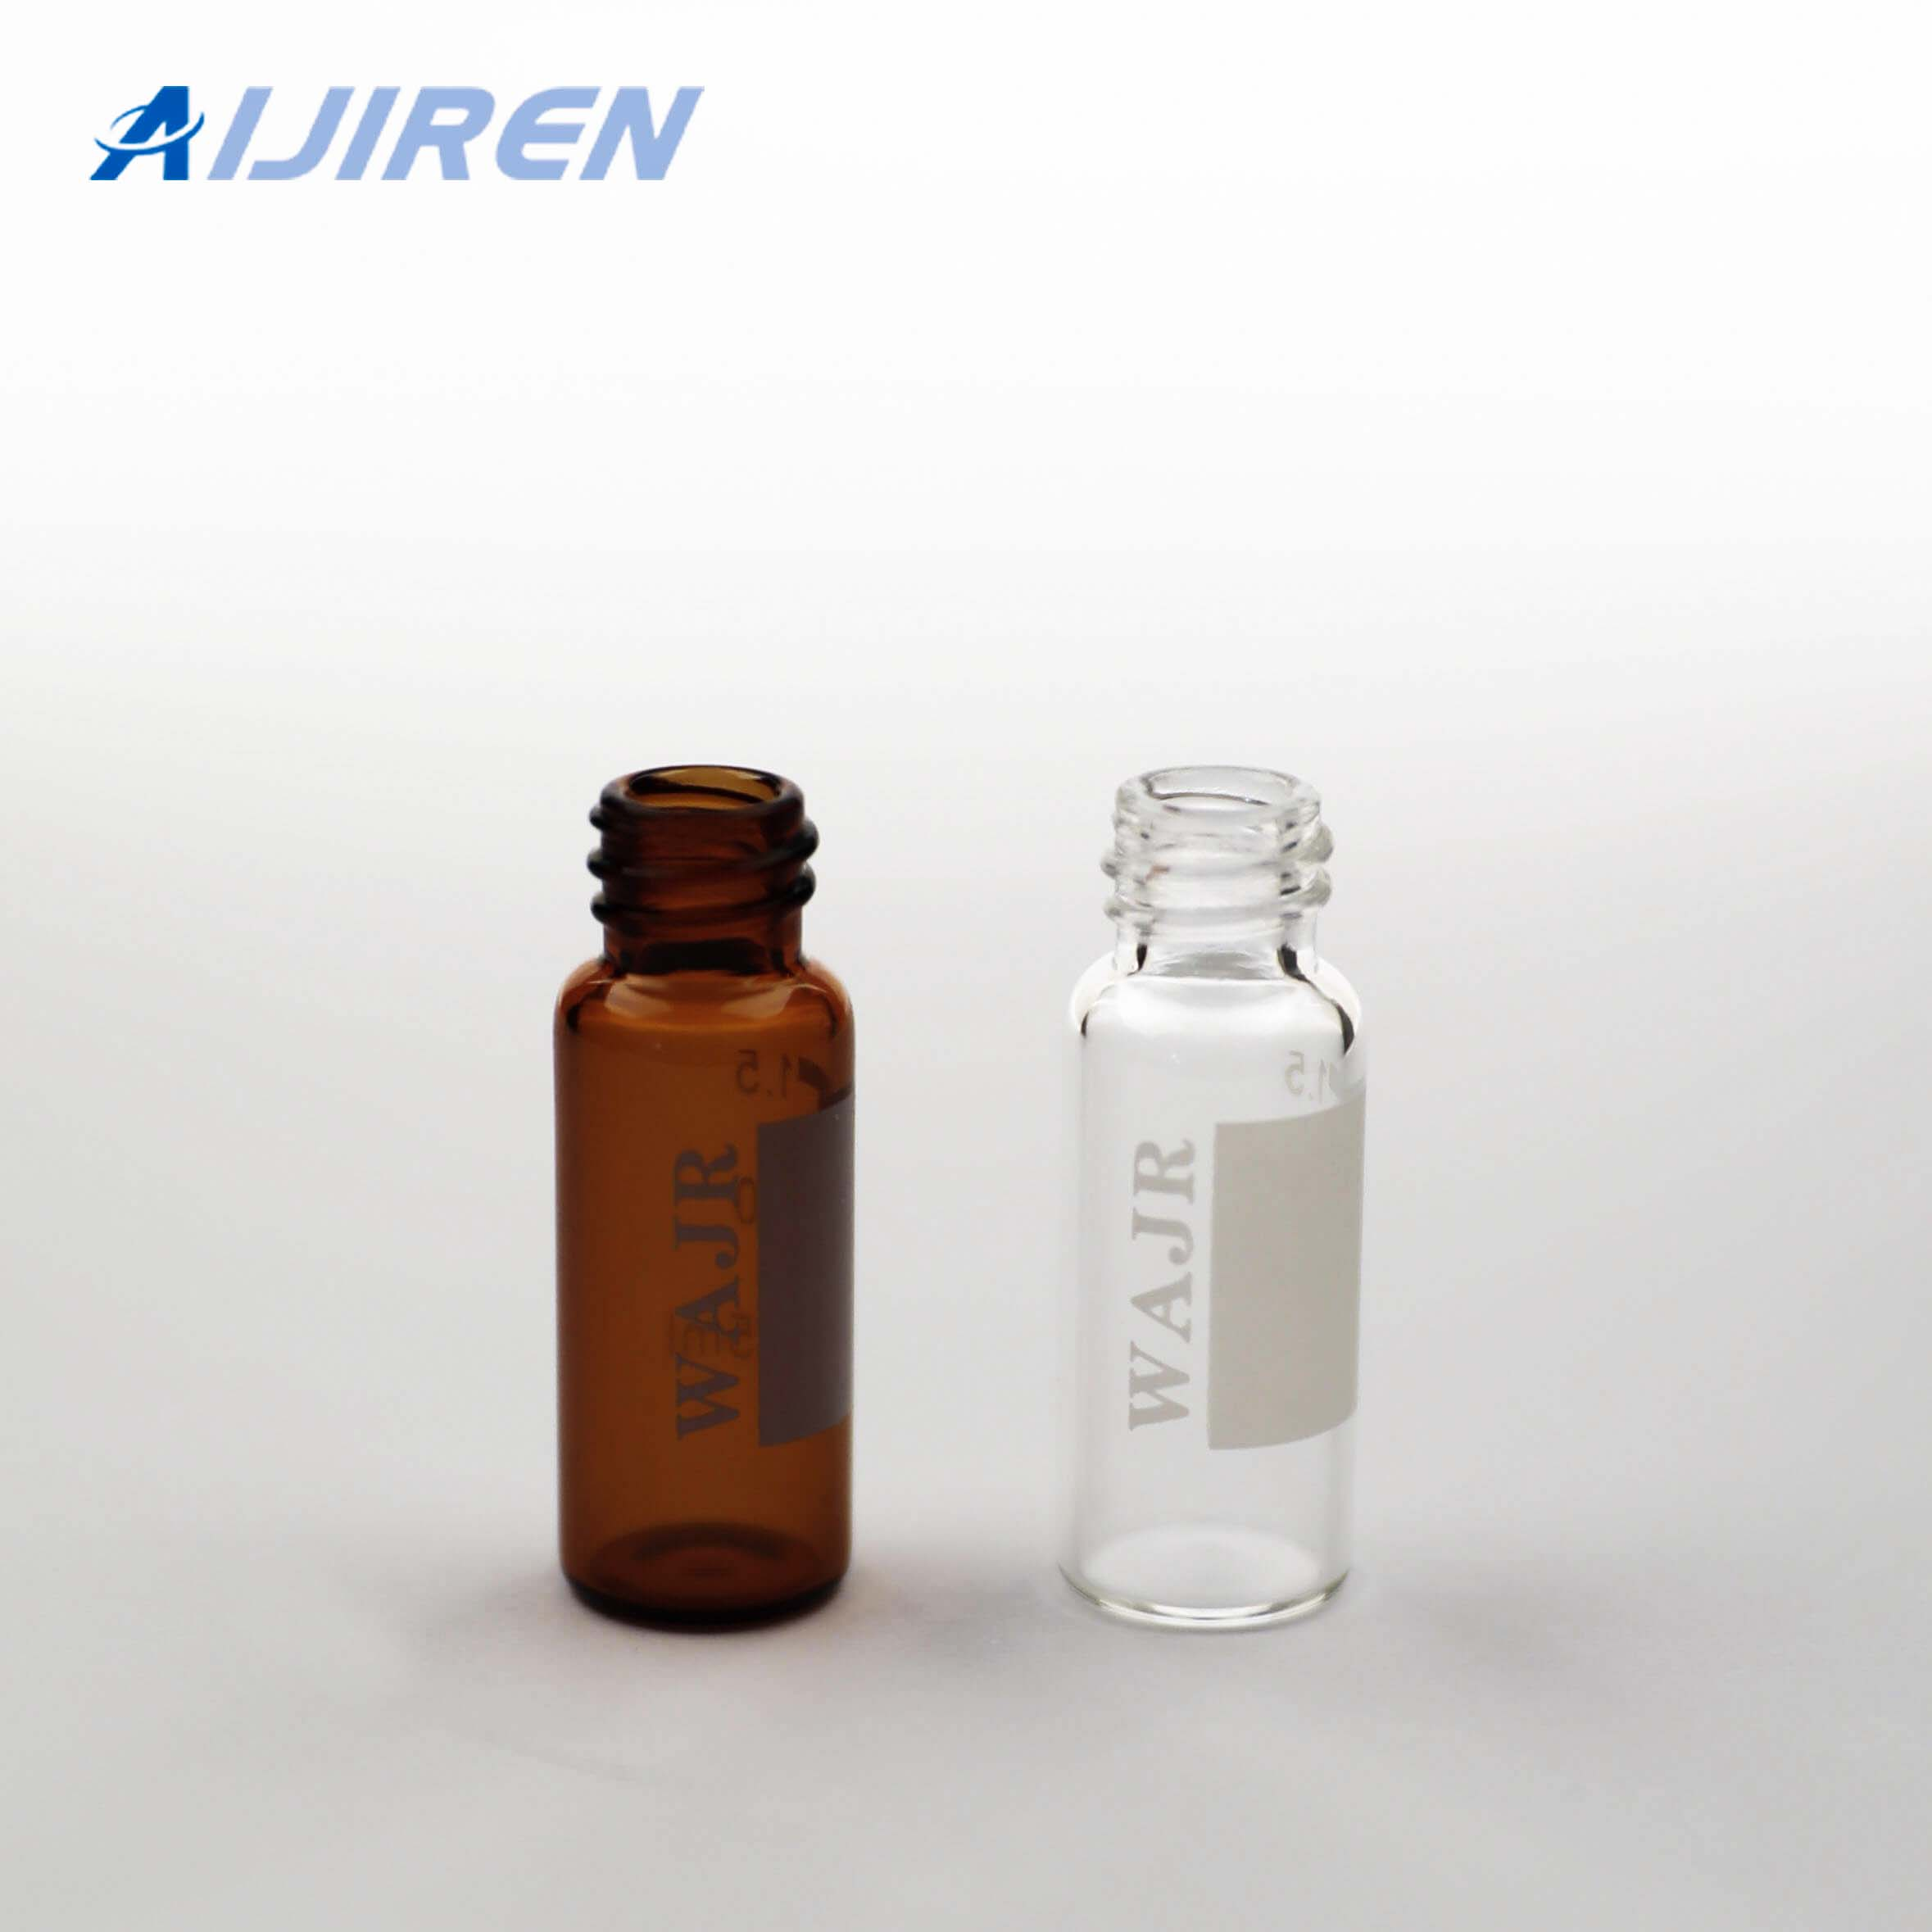 20ml headspace vialAmber and Clear Glass Vial